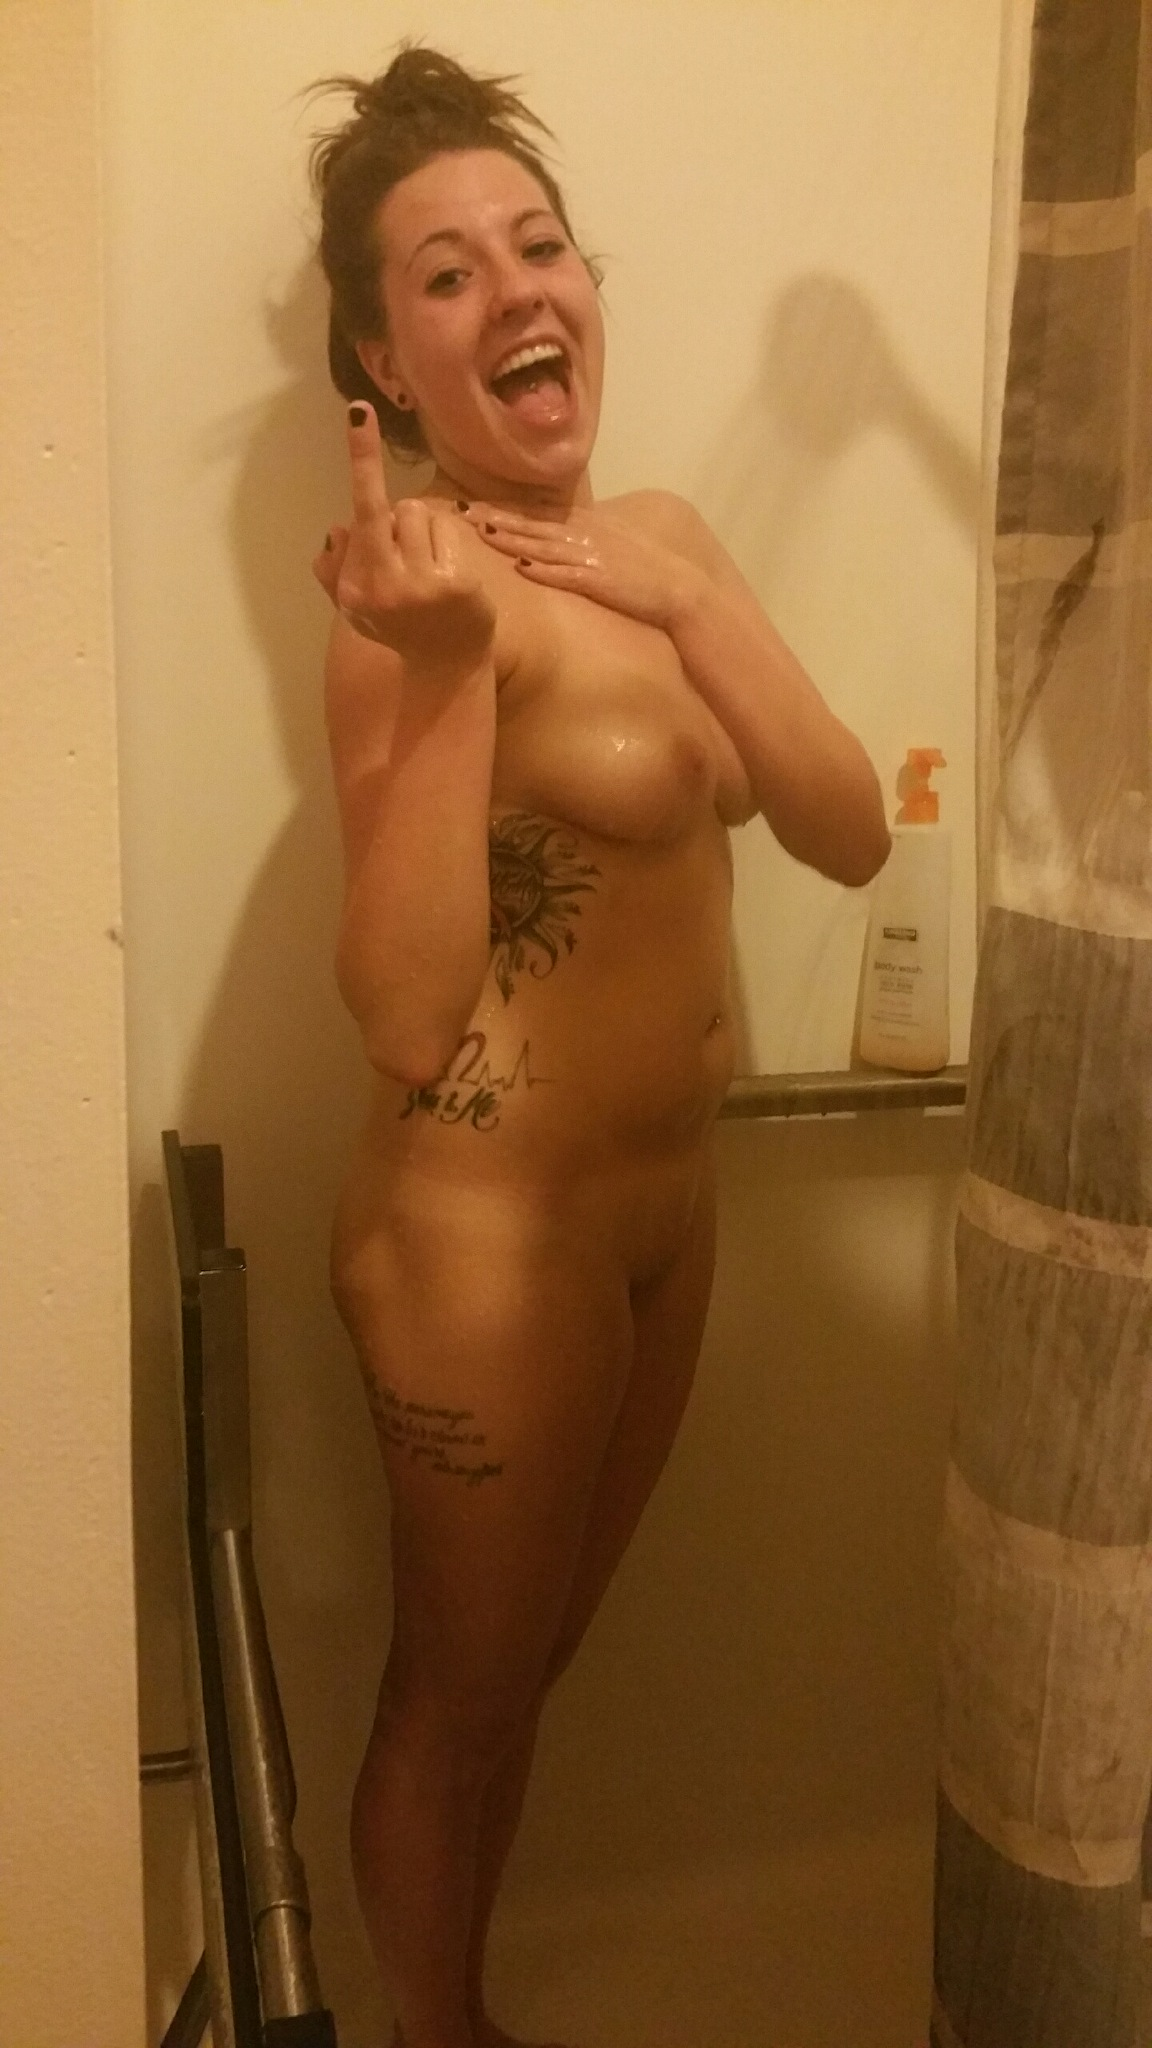 Wife caught nude in the shower pics